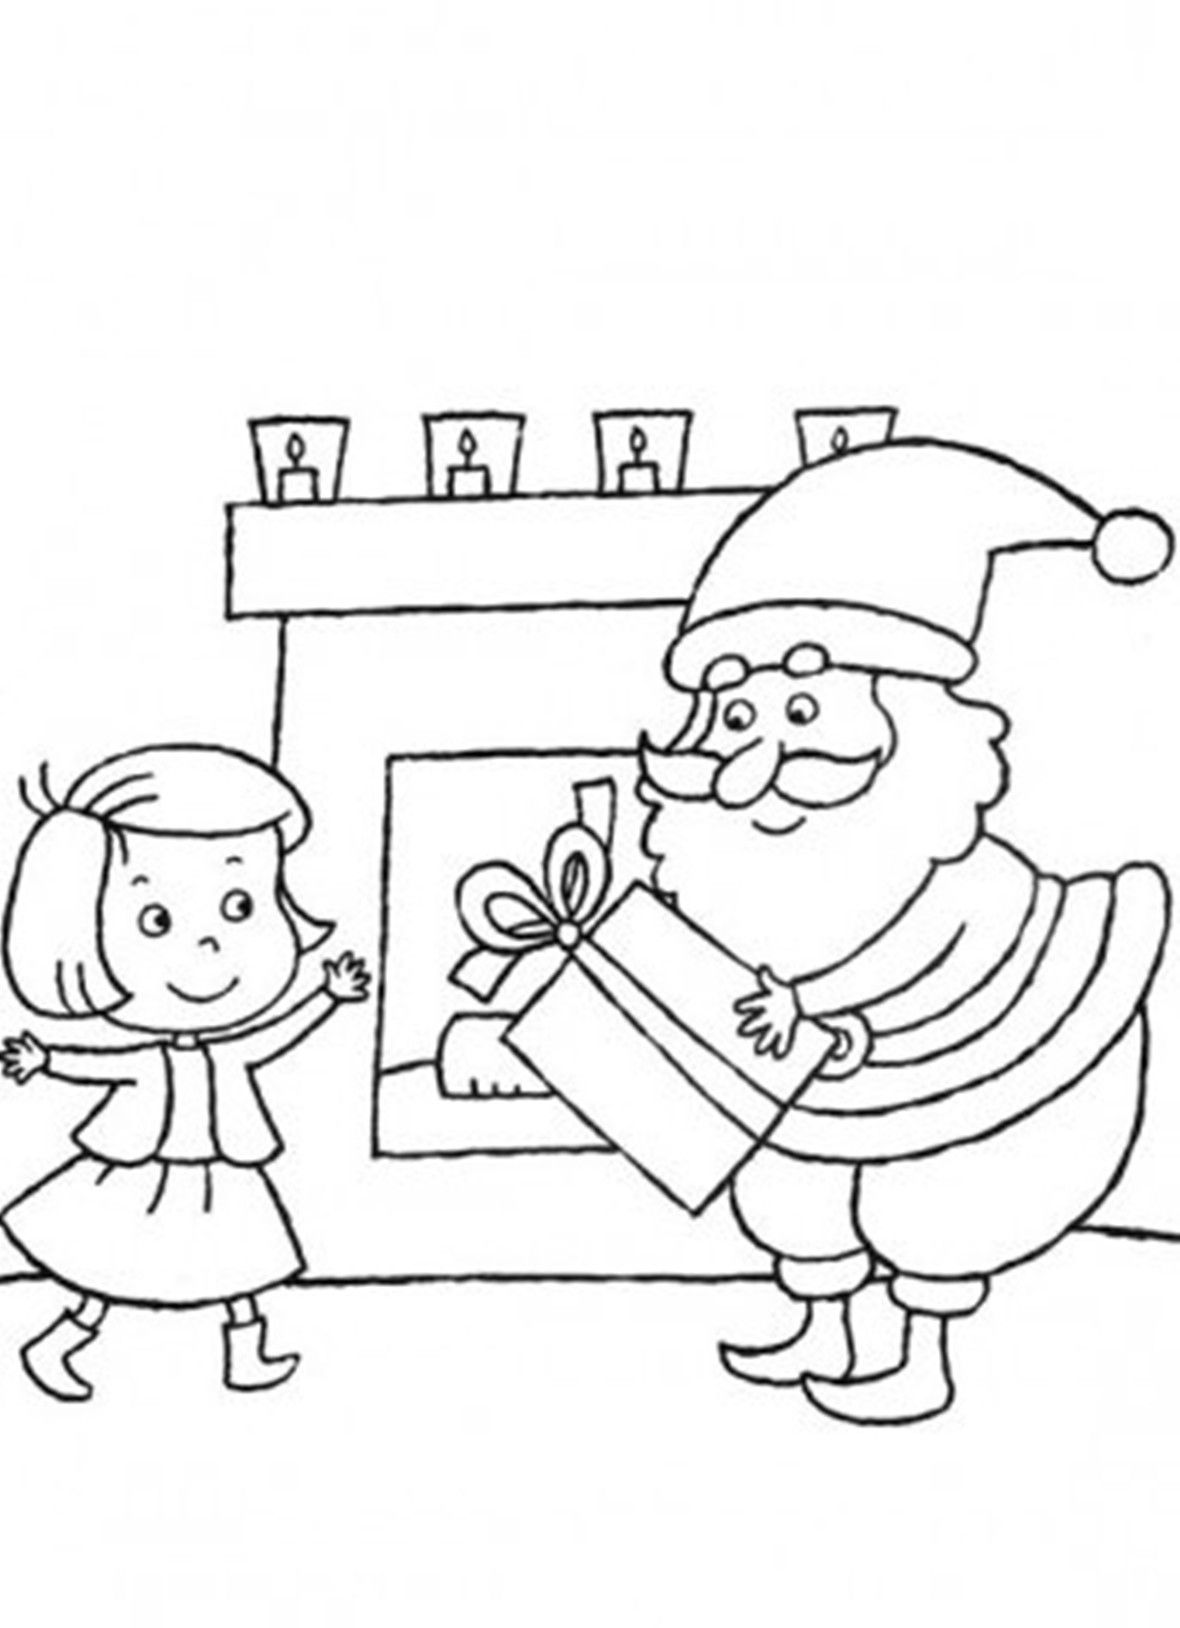 Christmas Coloring Pages Santa Delivering Gift For Little Girl ...